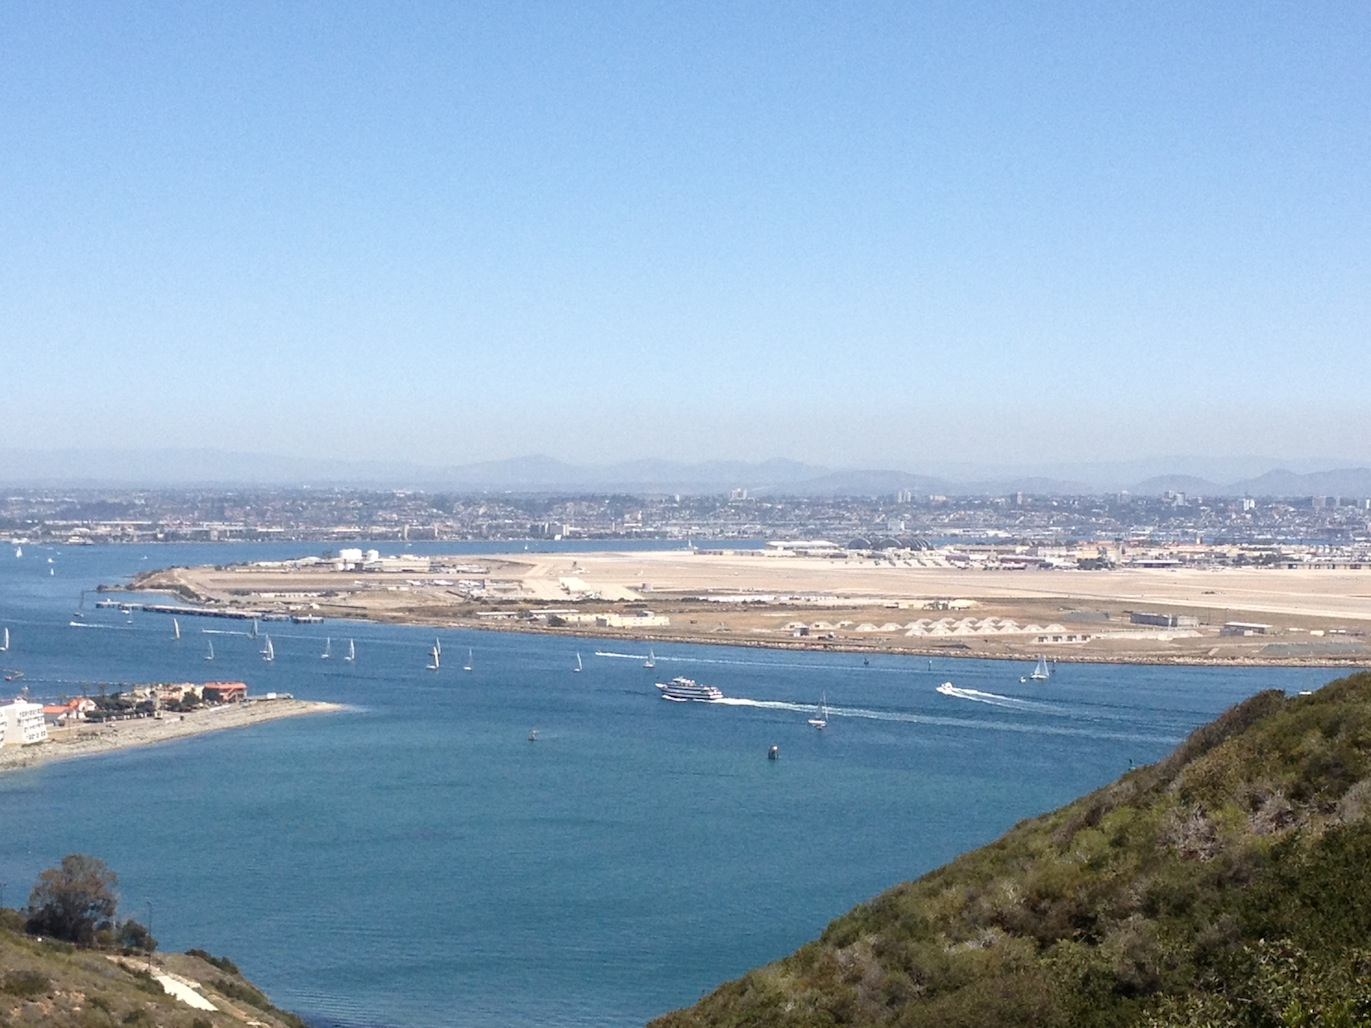 View from Point Loma towards downtown San Diego airport